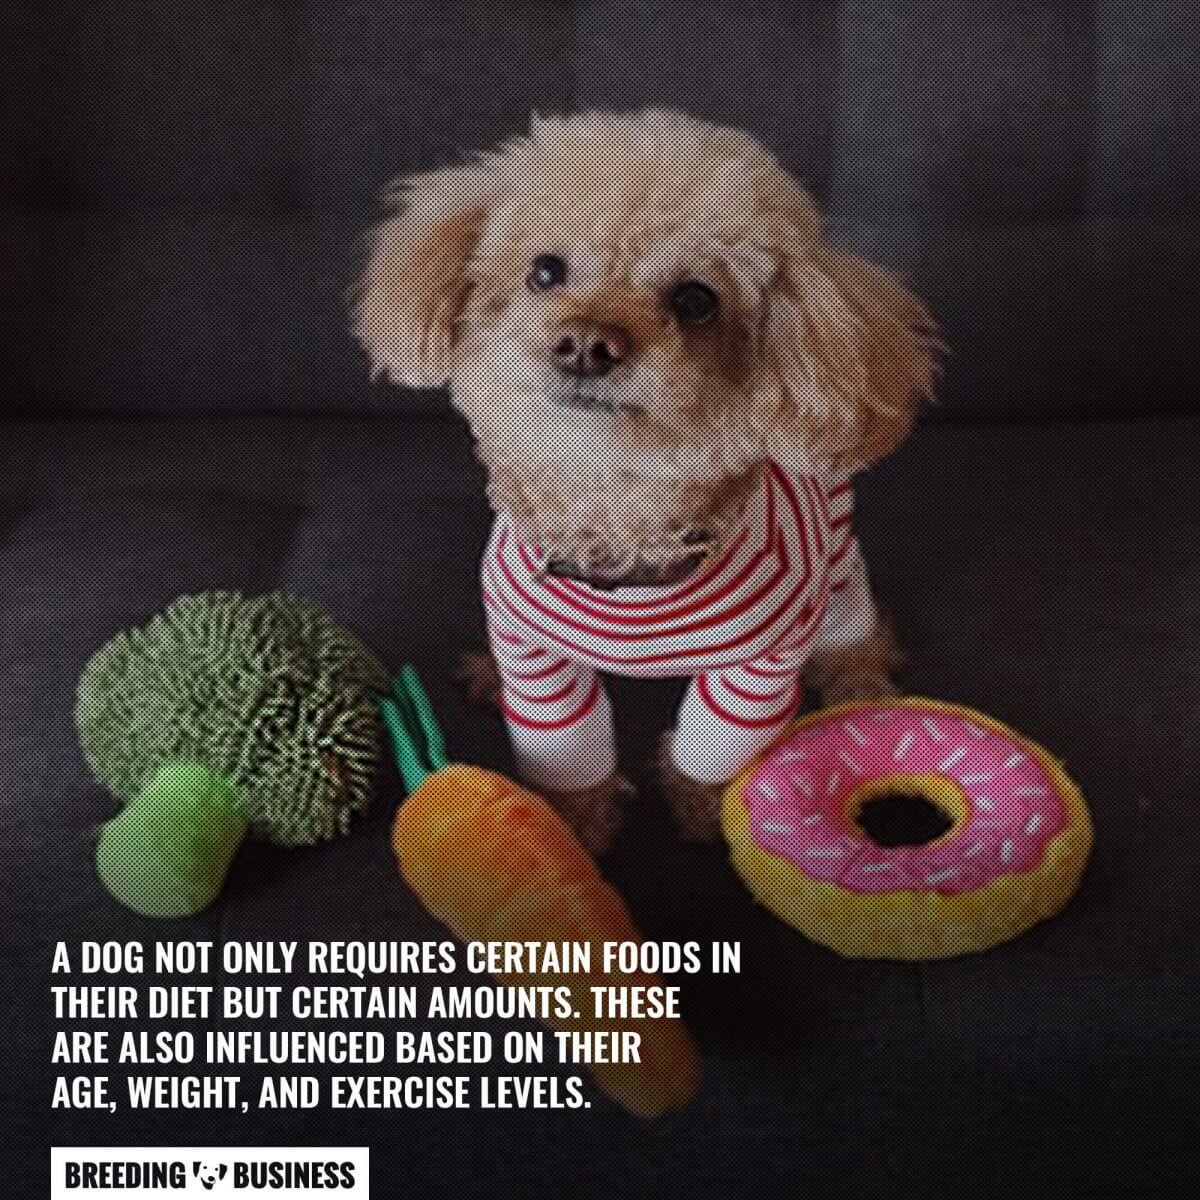 Diet is a pillar of canine health.